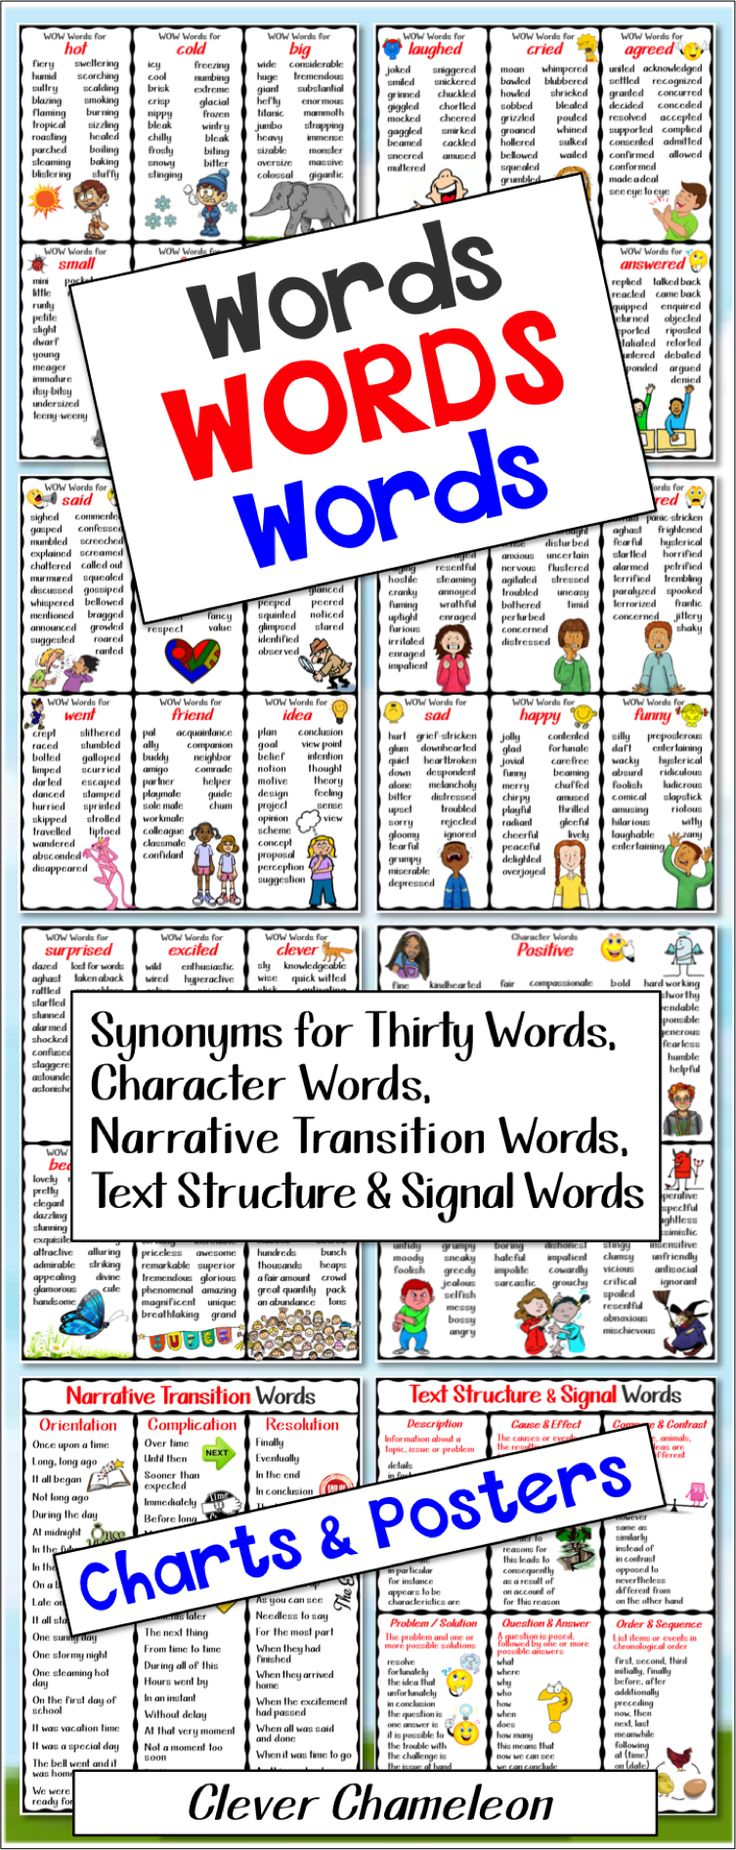 Synonyms, Character Words, Narrative Transition Words and Text Structure Signal Words in Charts and Posters